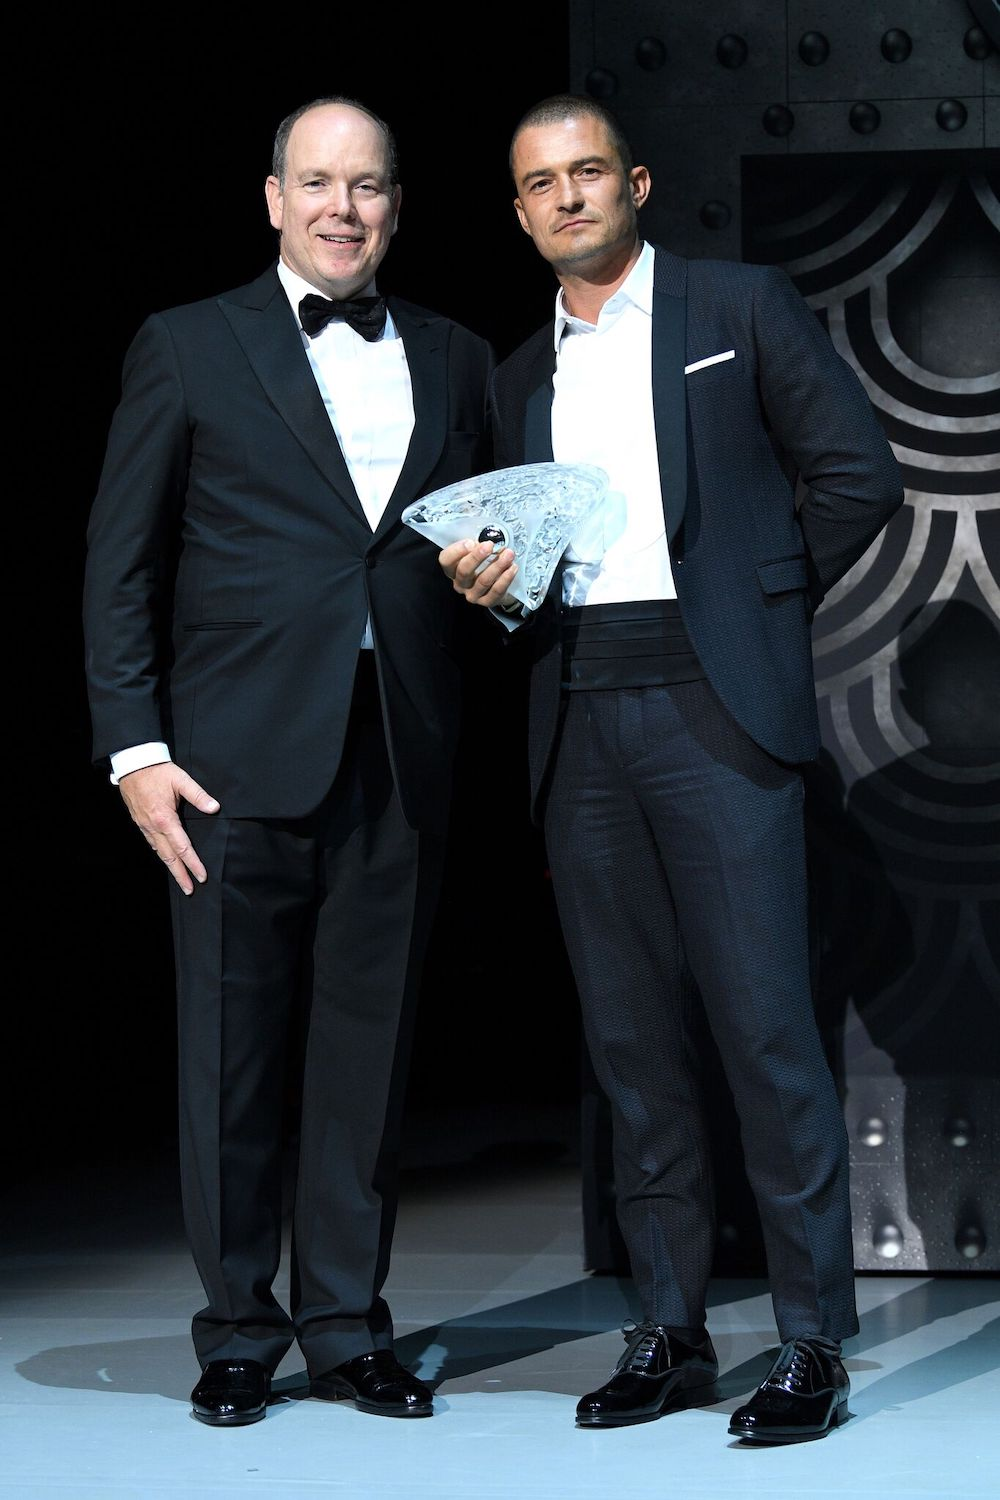 Prince Albert and 2018 award recipient Orlando Bloom